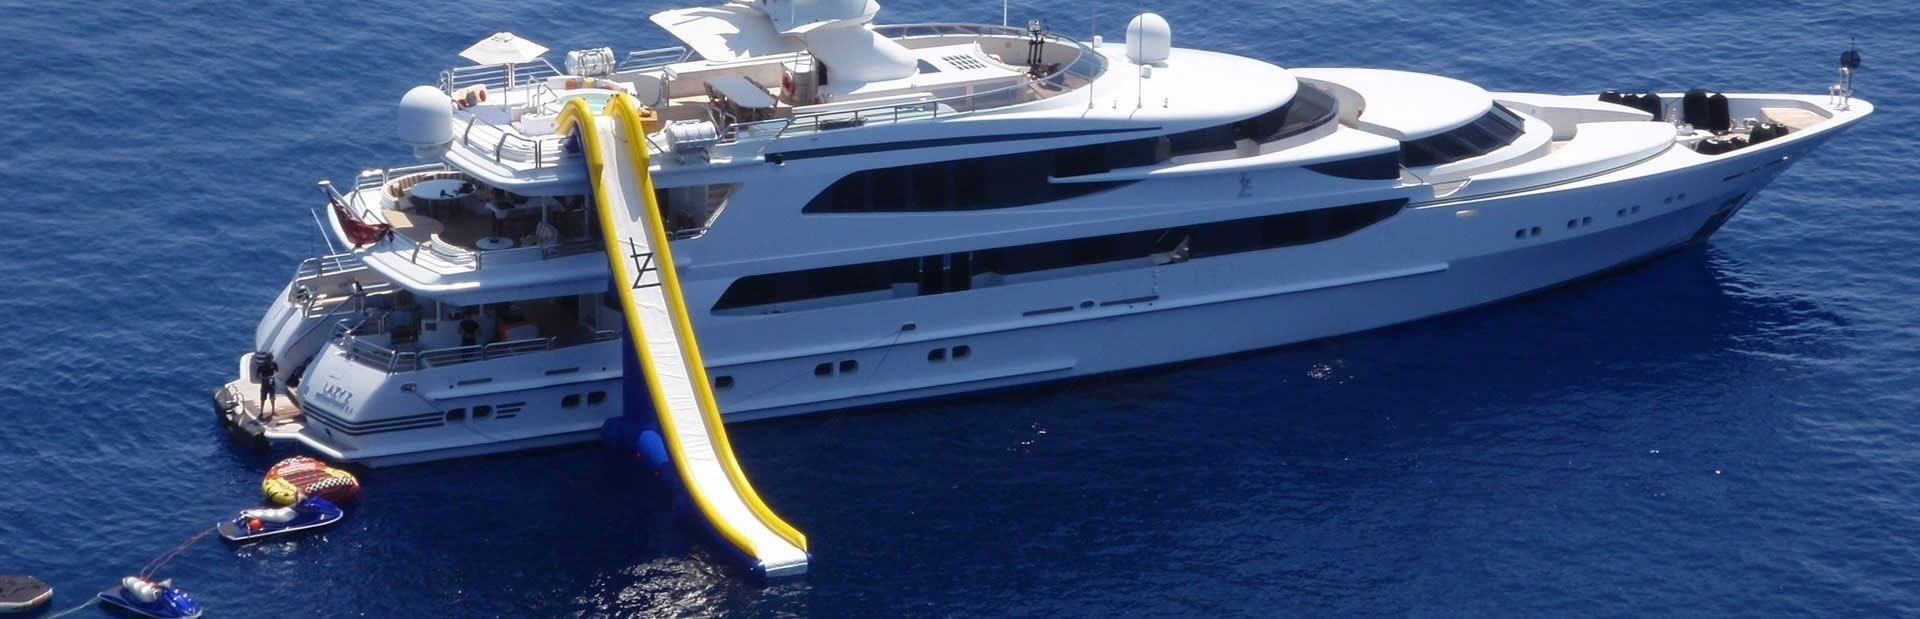 Charter Yacht Lazy Z with her waterslide